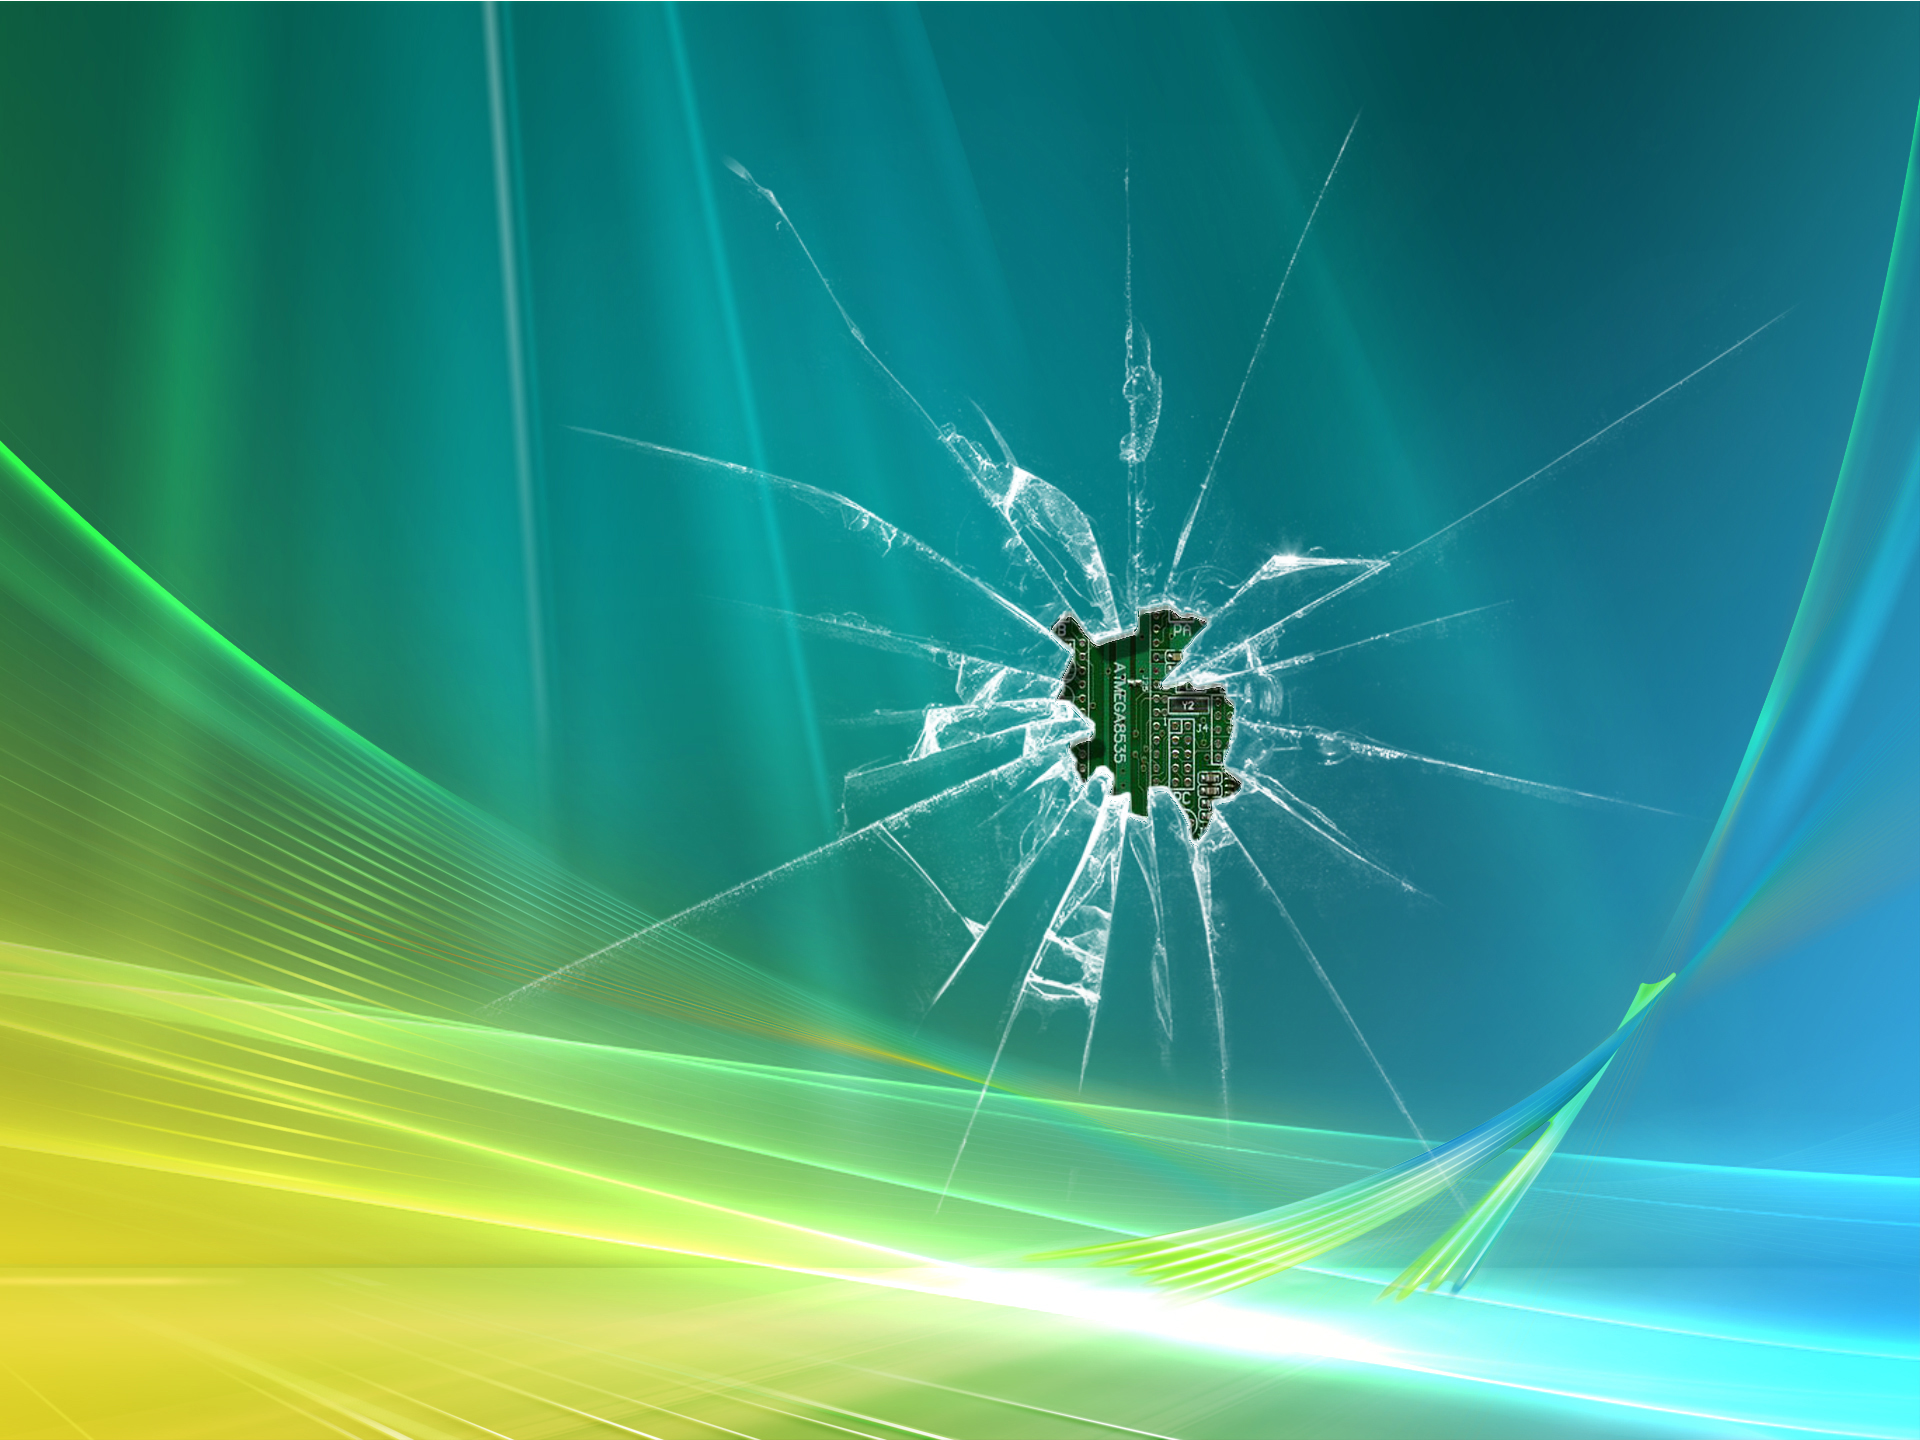 broken screen wallpaper prank - wallpapersafari